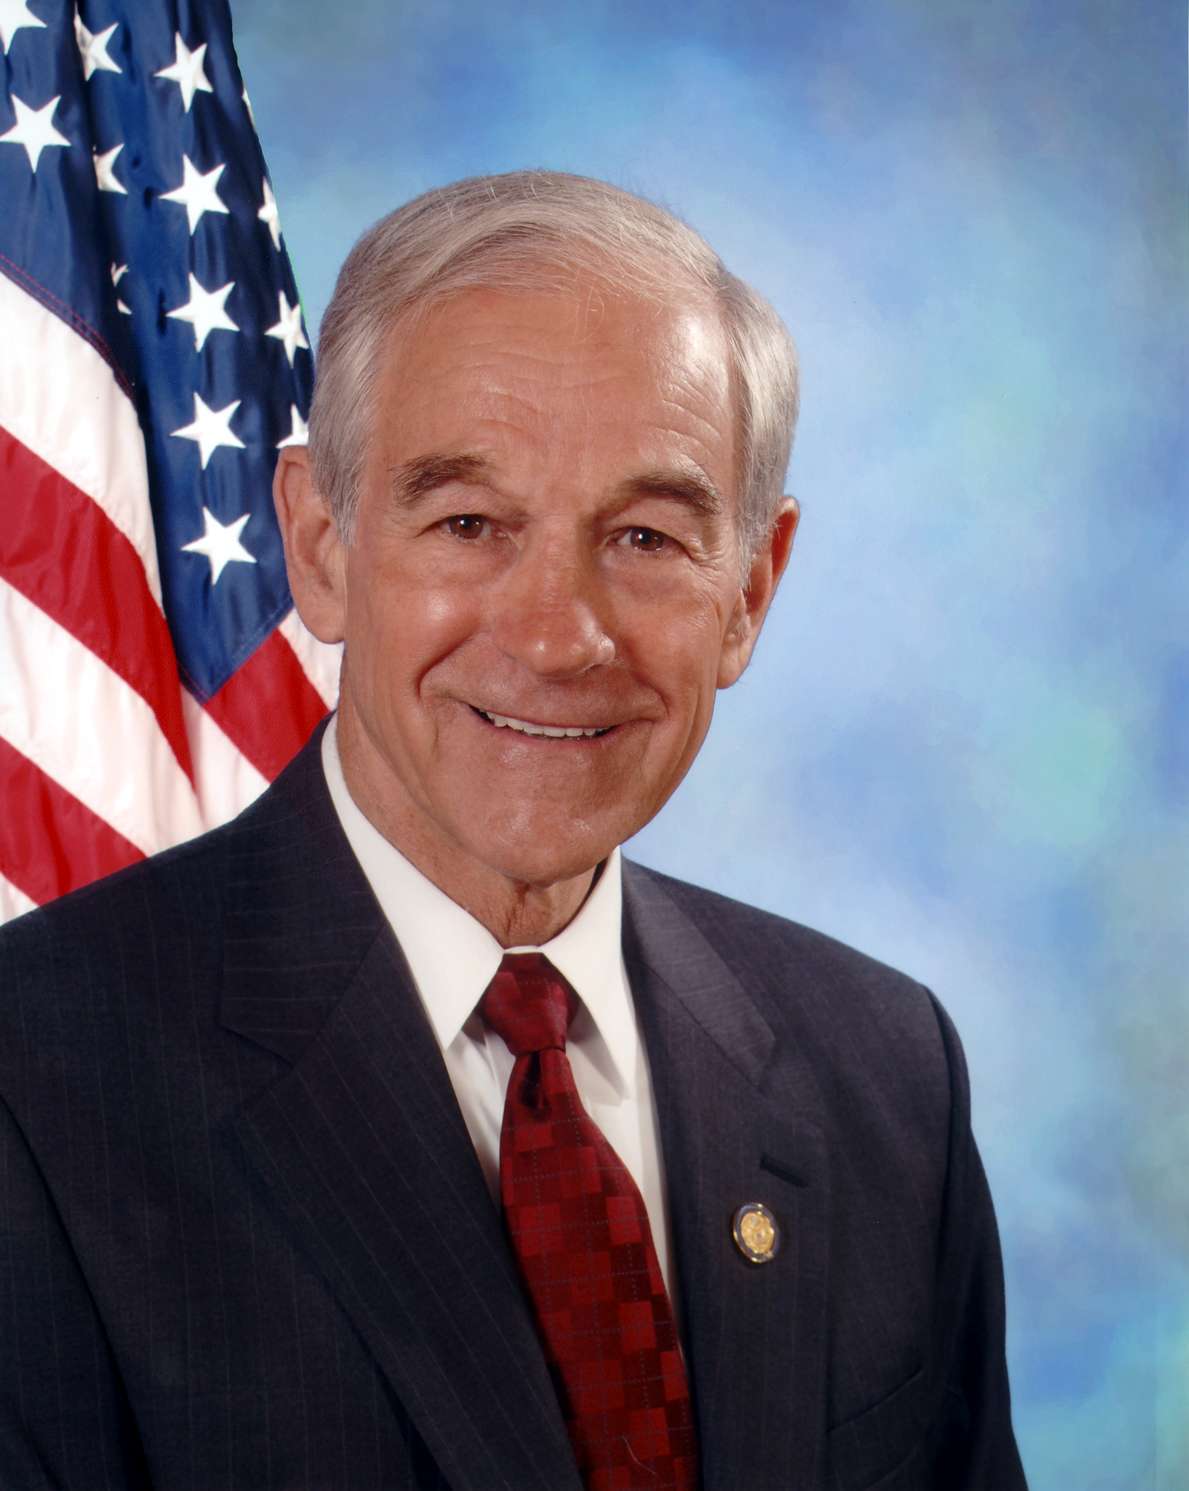 Ron Paul: The Internet Revolution is a Liberty Revolution